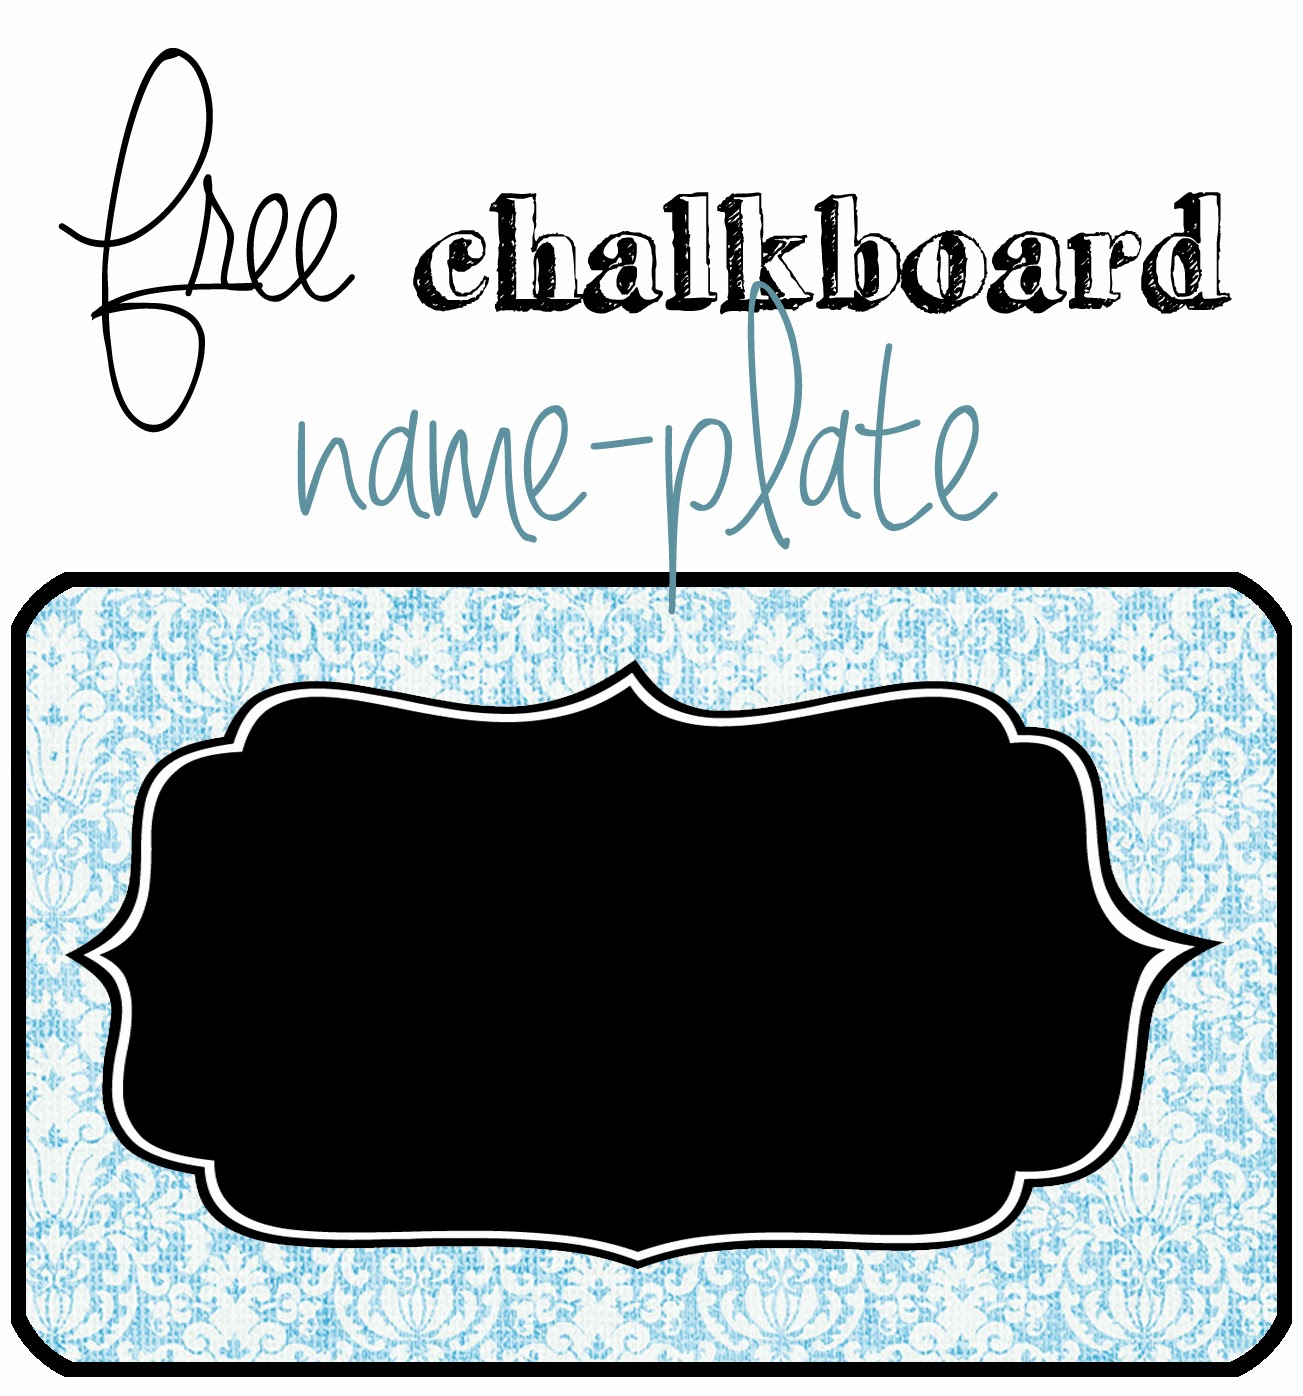 paradise undeserved free chalkboard nameplate printable